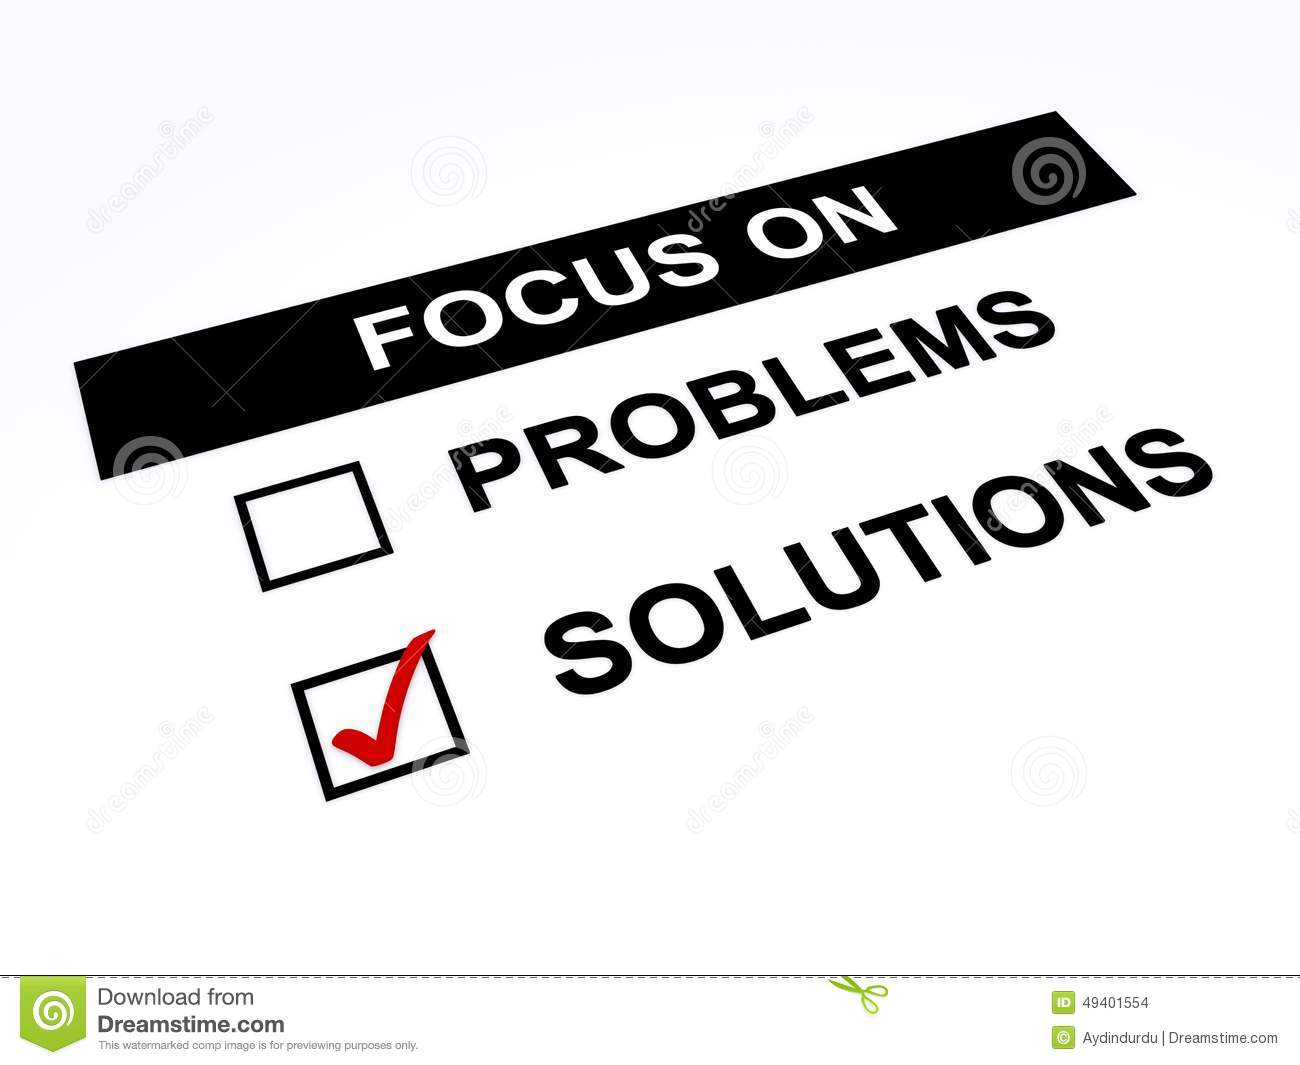 Focus on solutions stock illustration. Image of positive